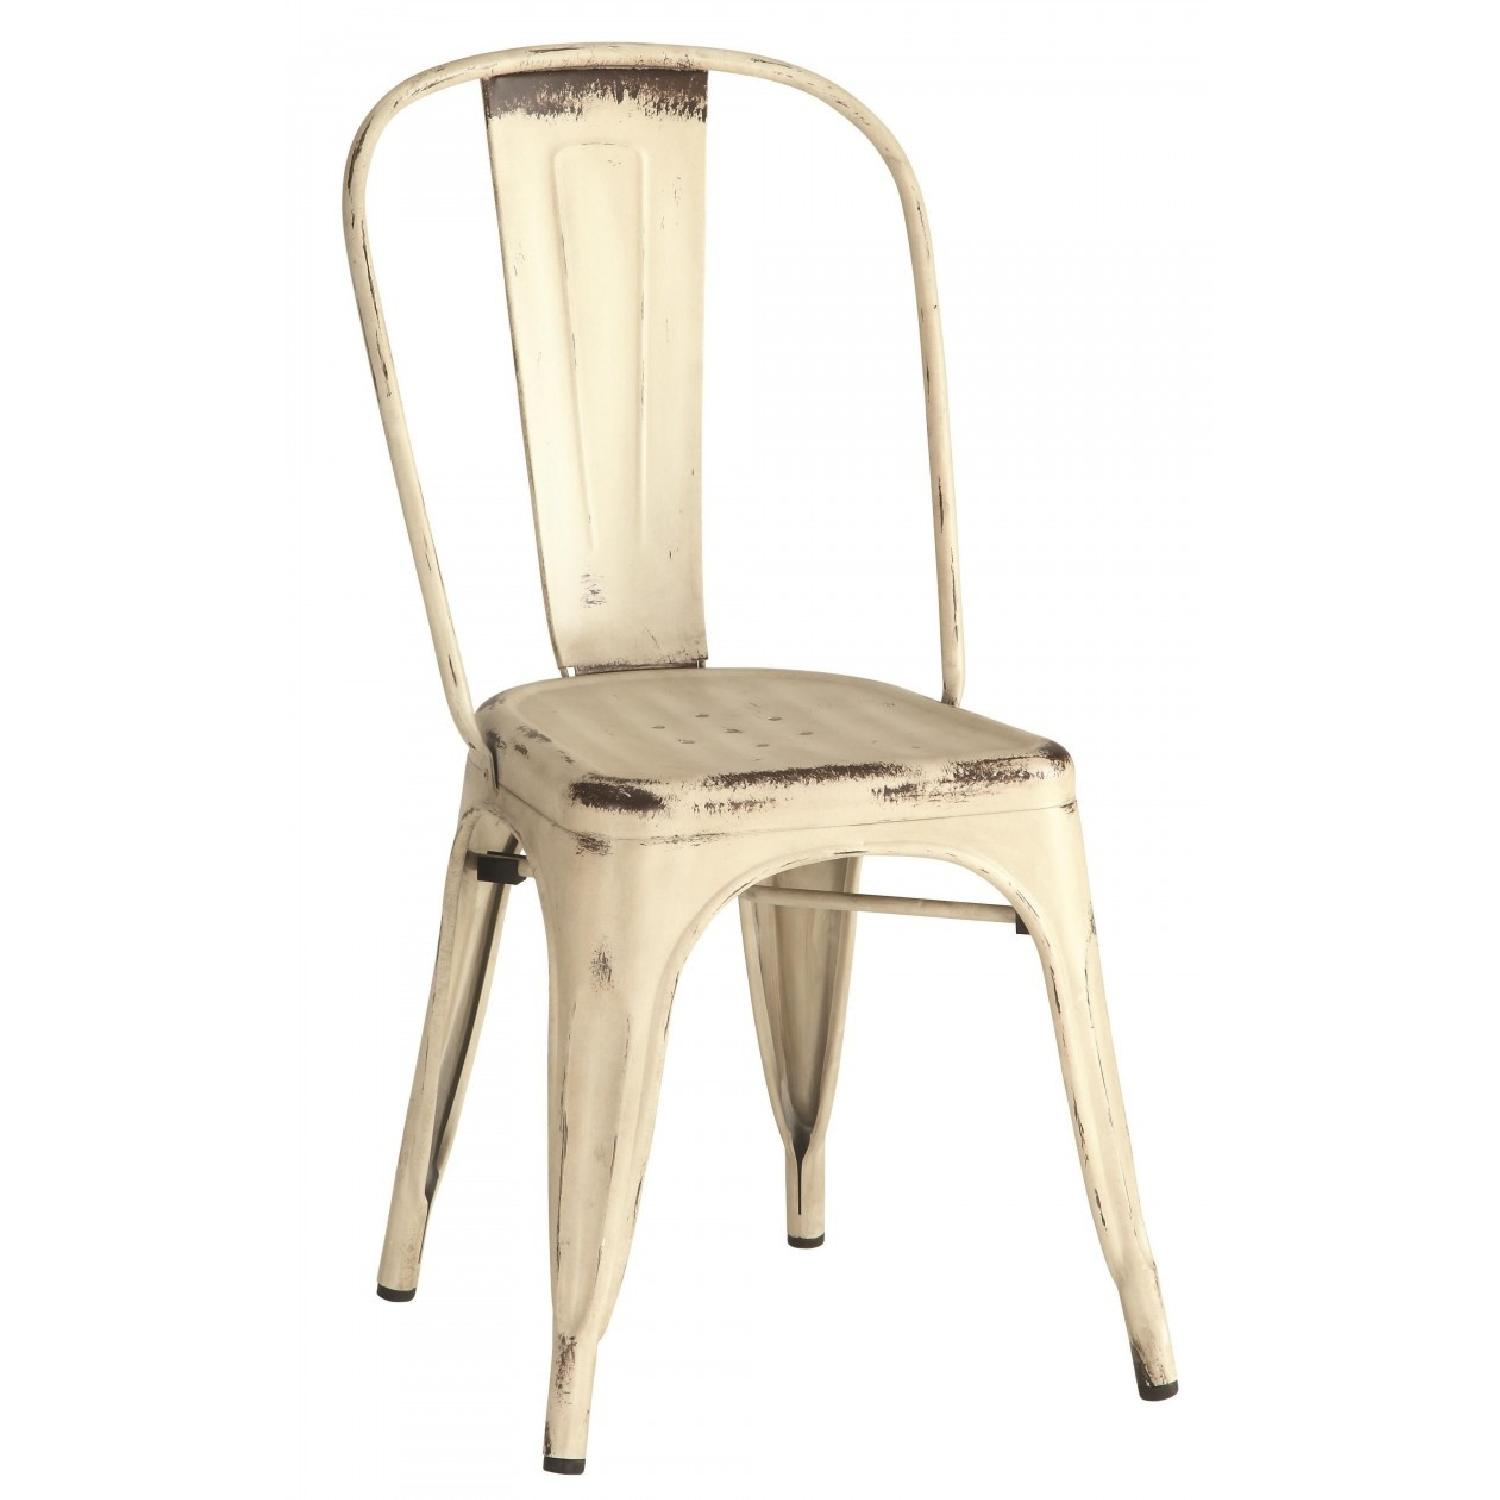 Rustic Galvanized Metal Dining Chairs in Antique White